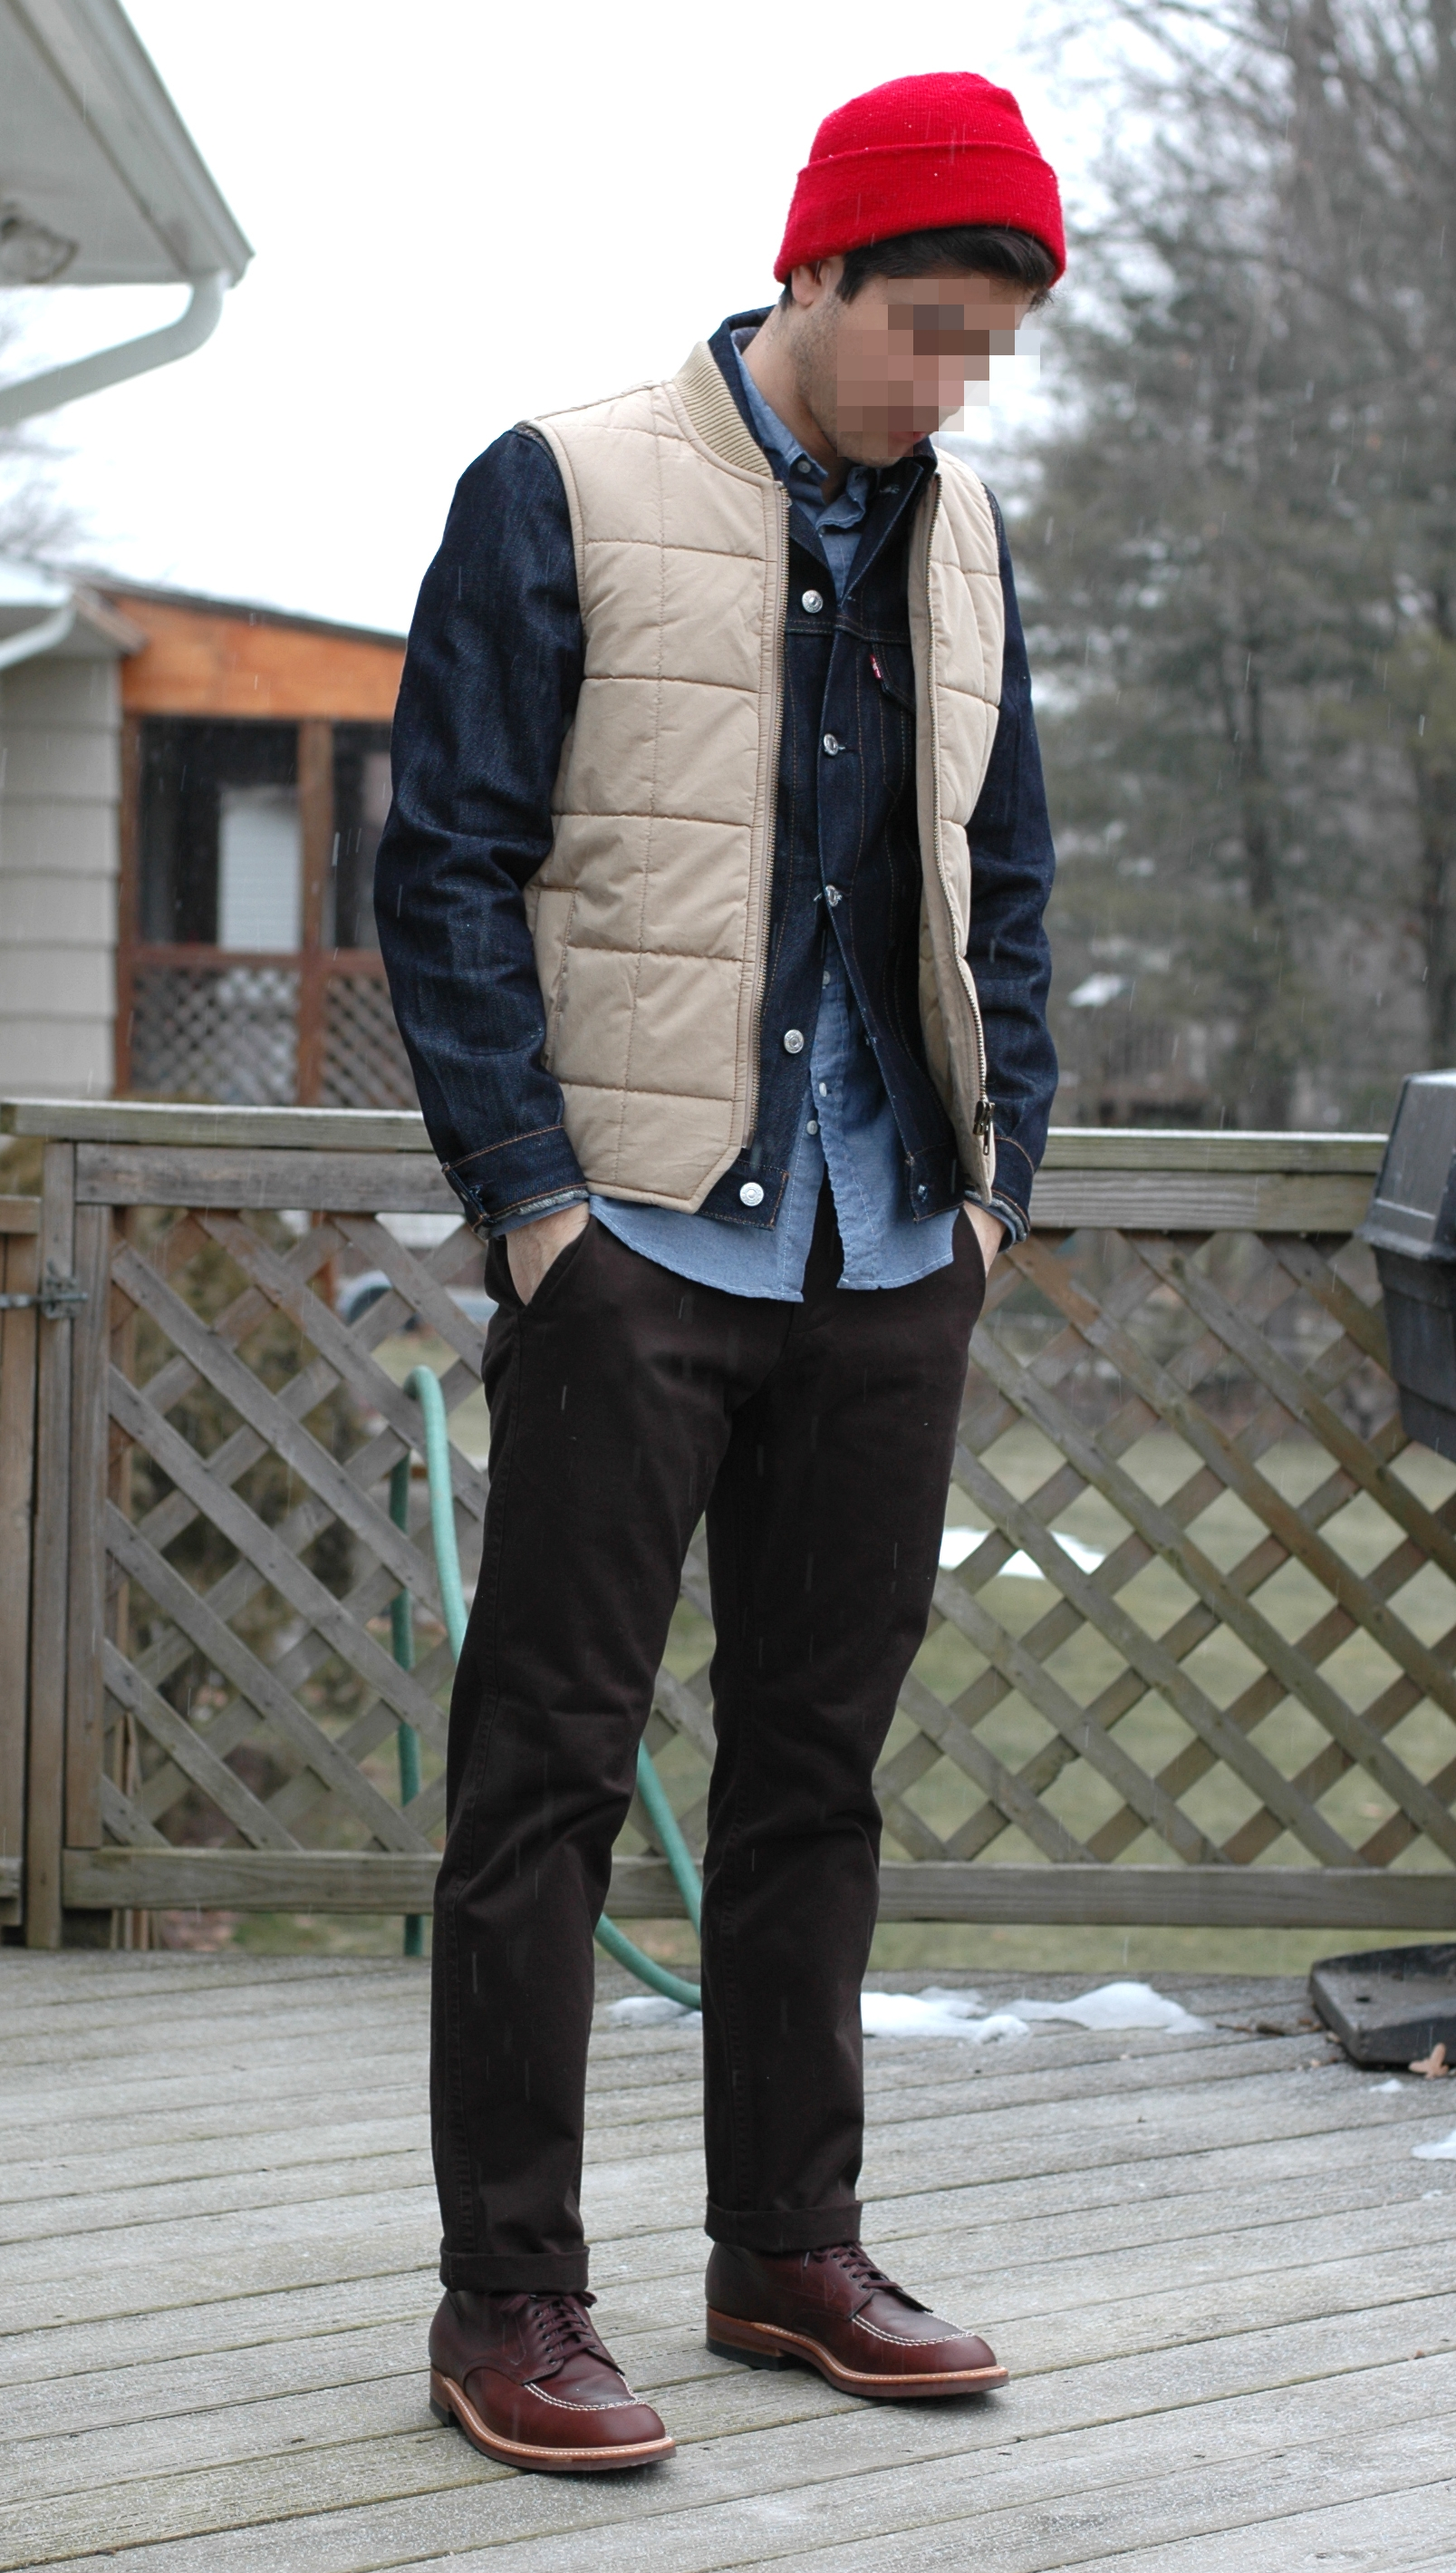 Inspiration album: denim jacket as a layering piece ...